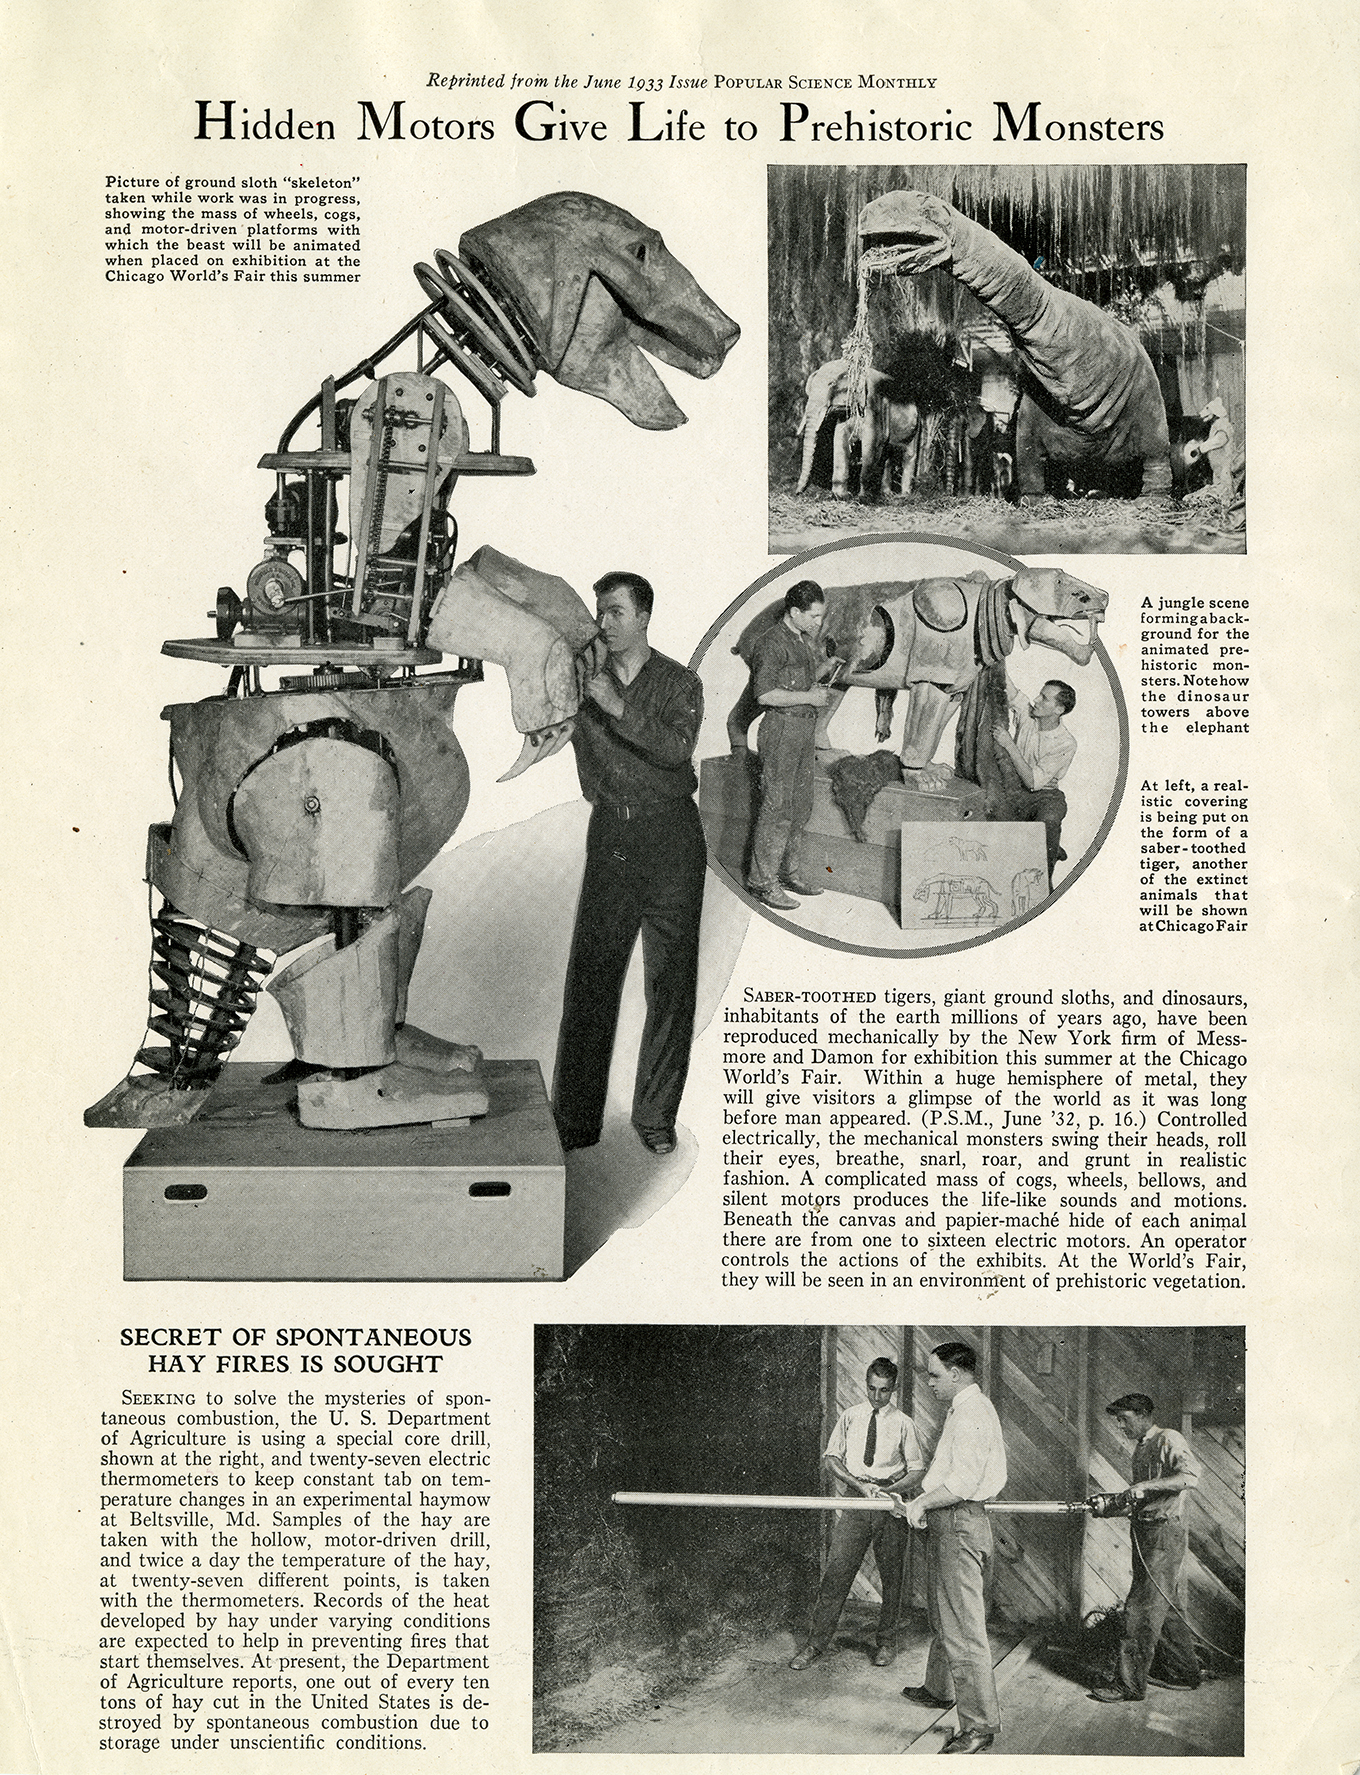 1933 Popular Science Monthly article featuring robotic dinosaurs.